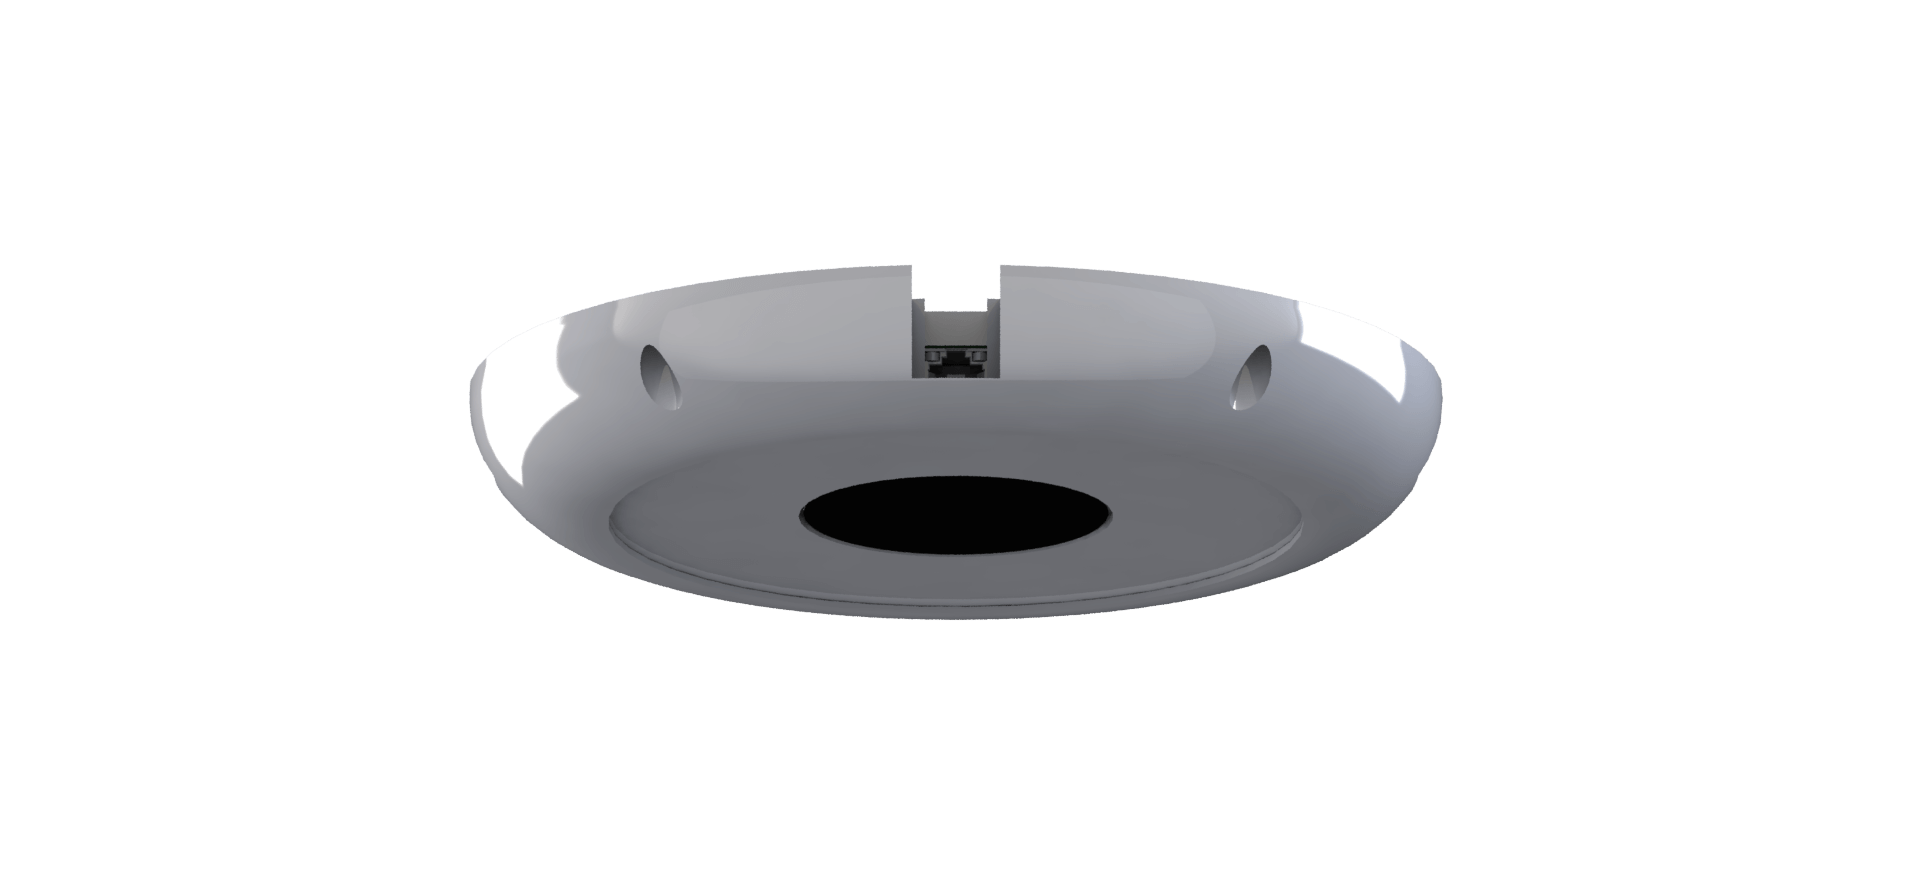 05 ACCESS POINT Large